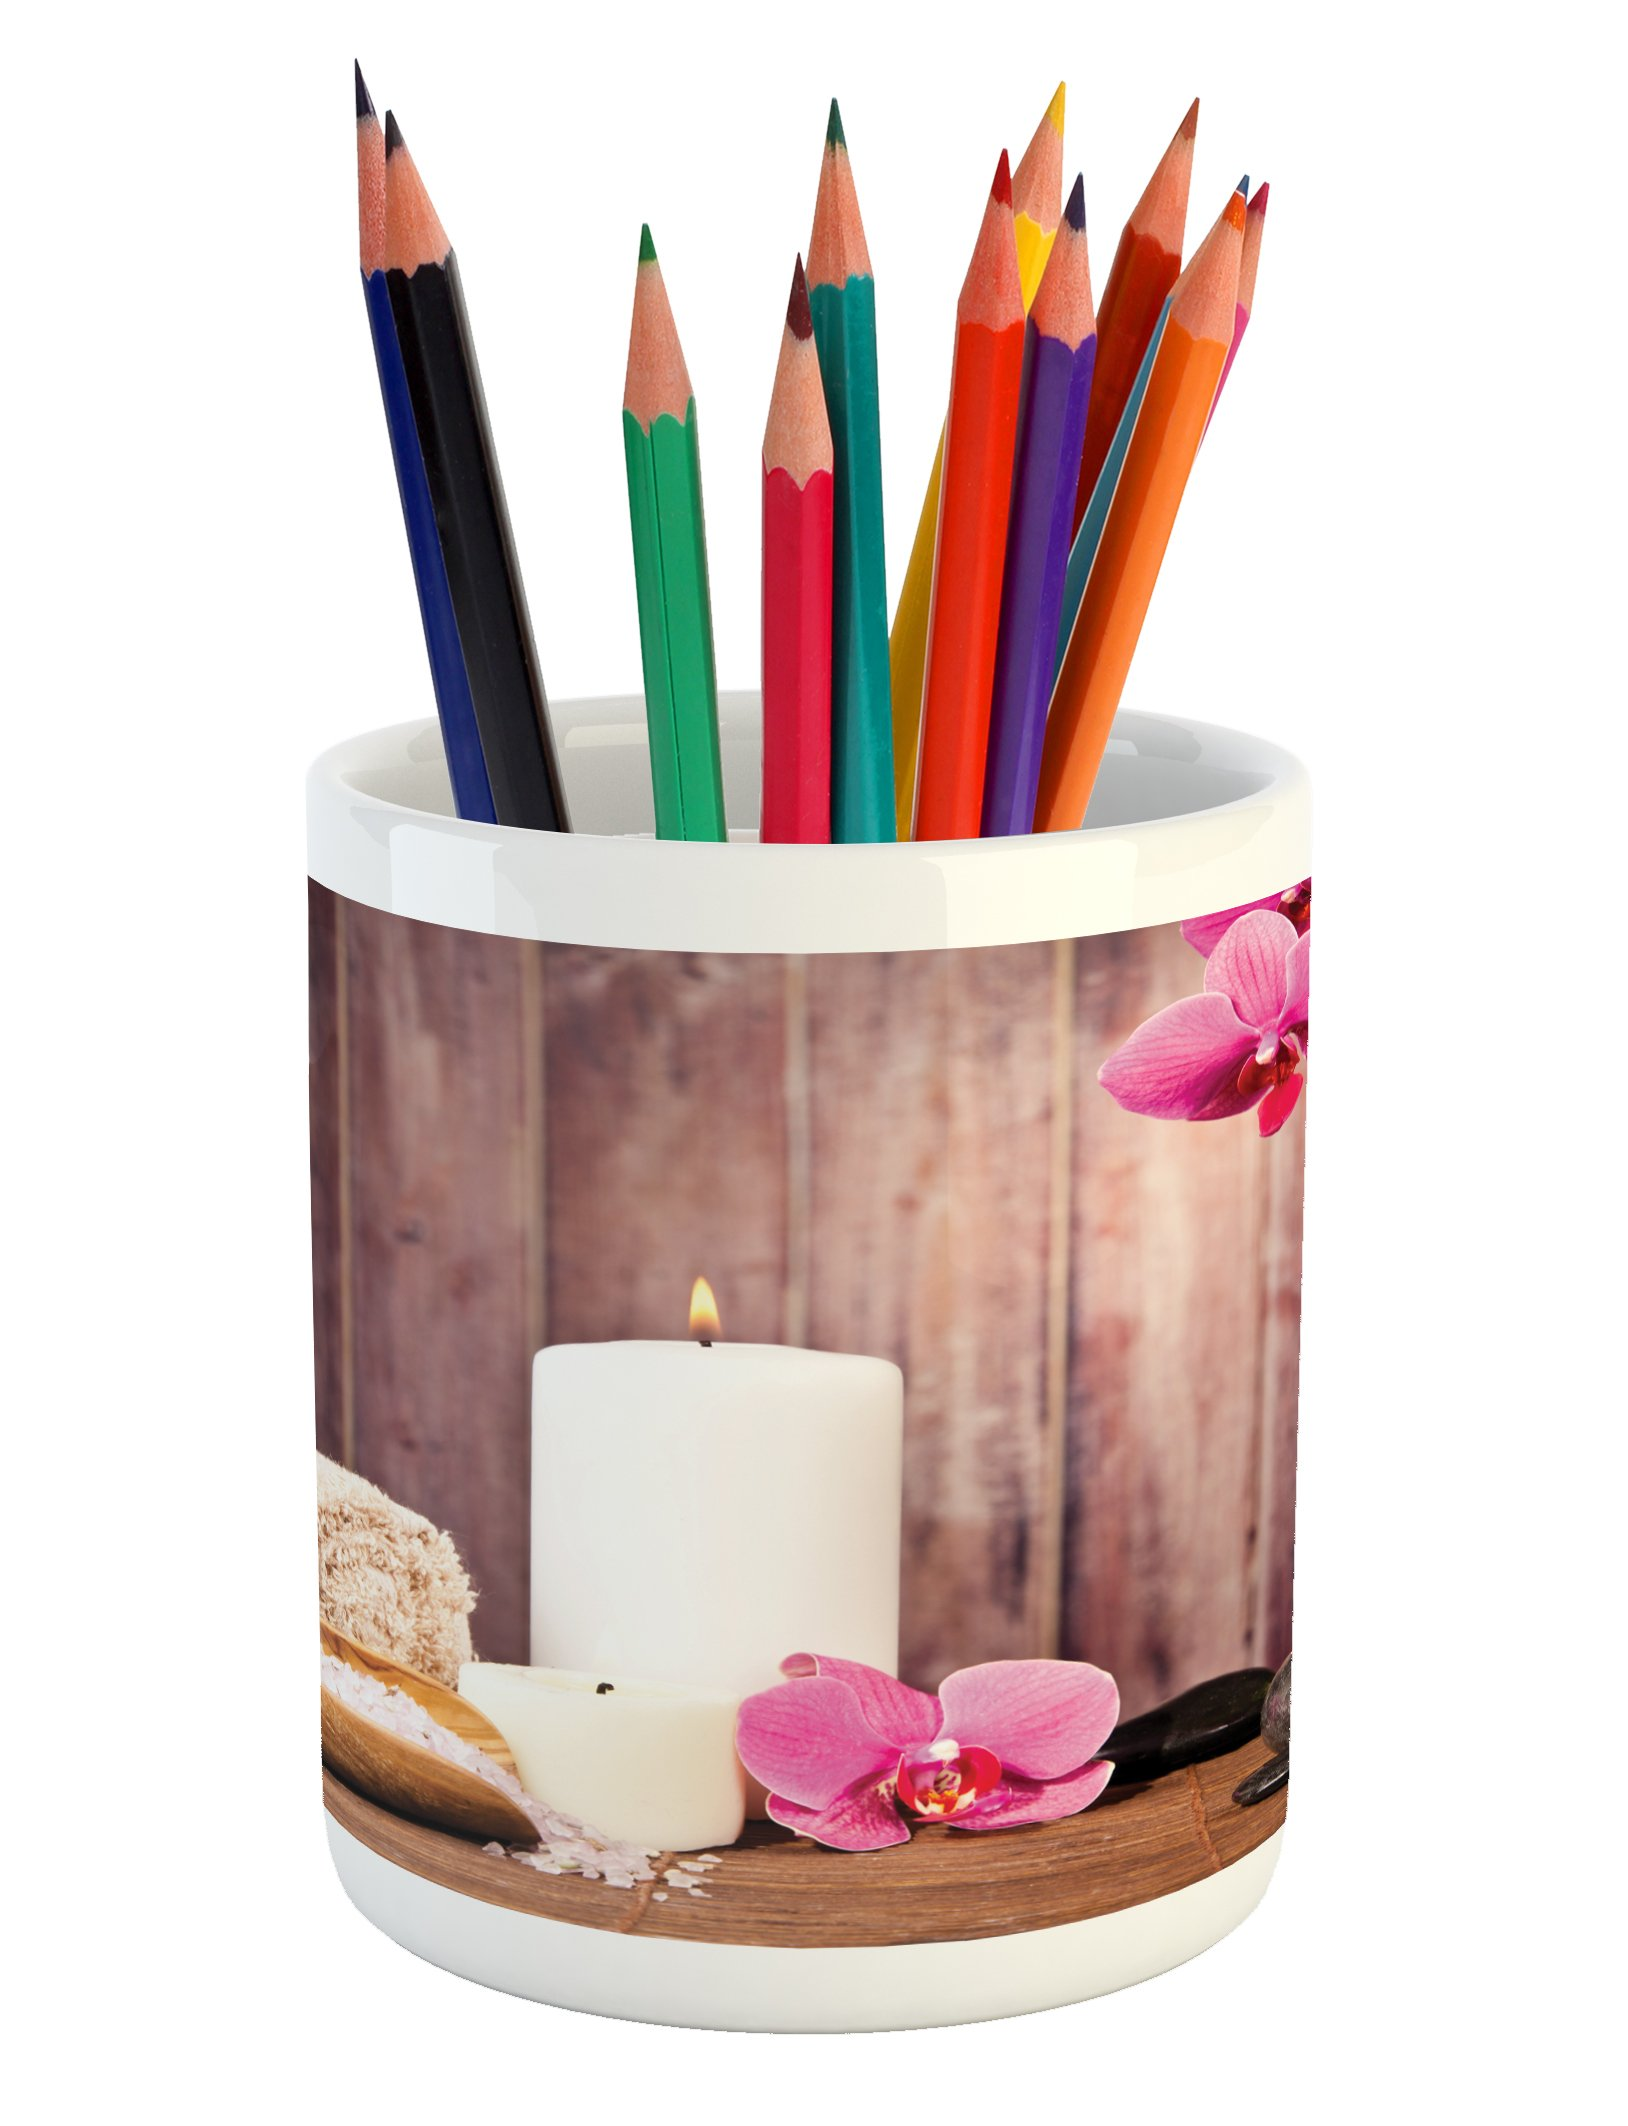 Lunarable Spa Pencil Pen Holder, Spa Candlelight Plants Wooden Wall Sea Salt Treatment Freshness Relaxing, Printed Ceramic Pencil Pen Holder for Desk Office Accessory, Green Pink Umber White